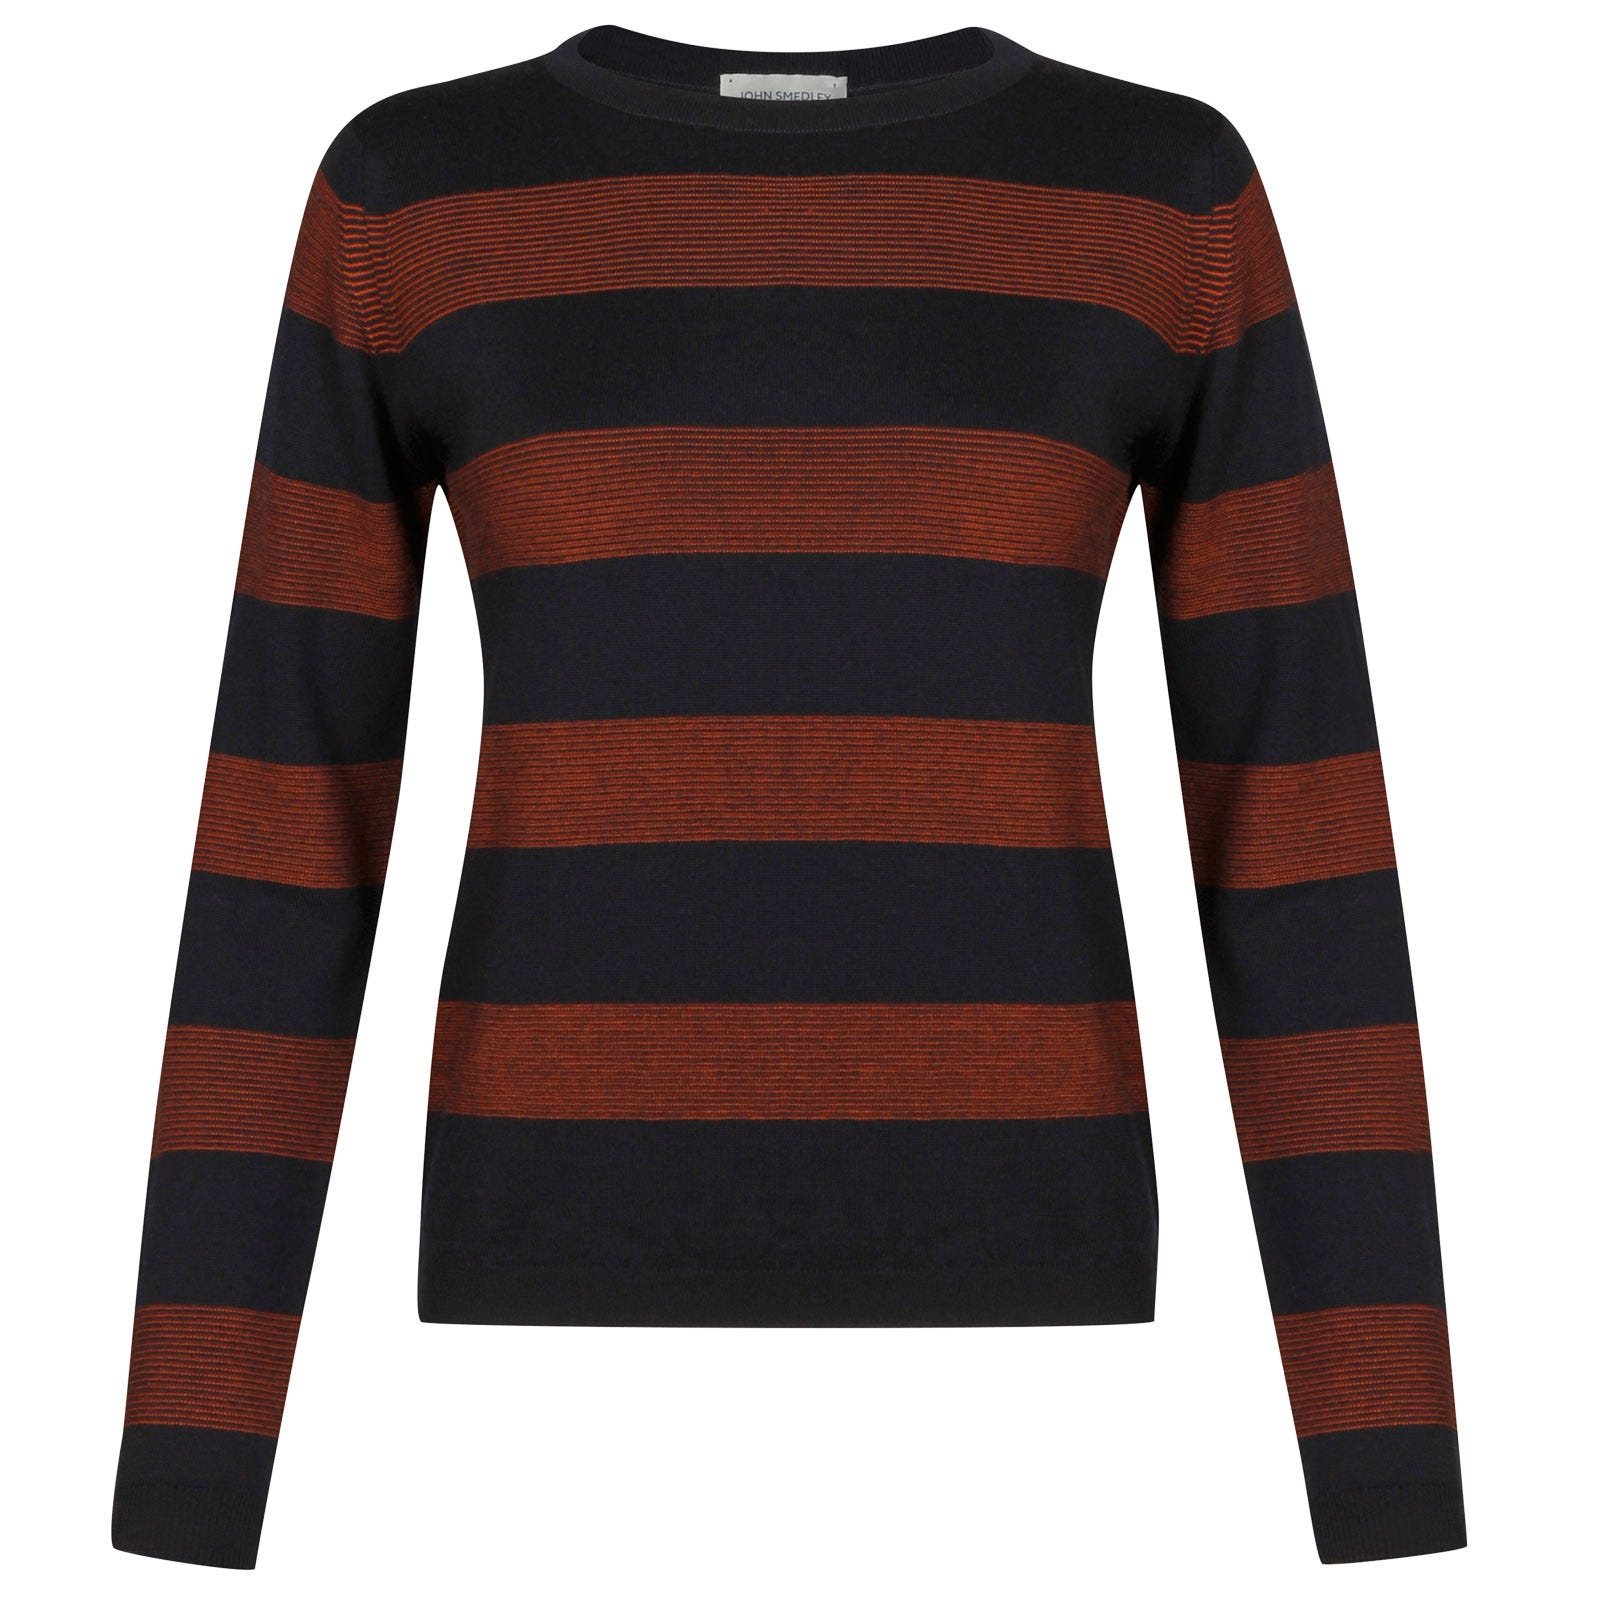 John Smedley larch Merino Wool Sweater in Midnight/Flare Orange-XL